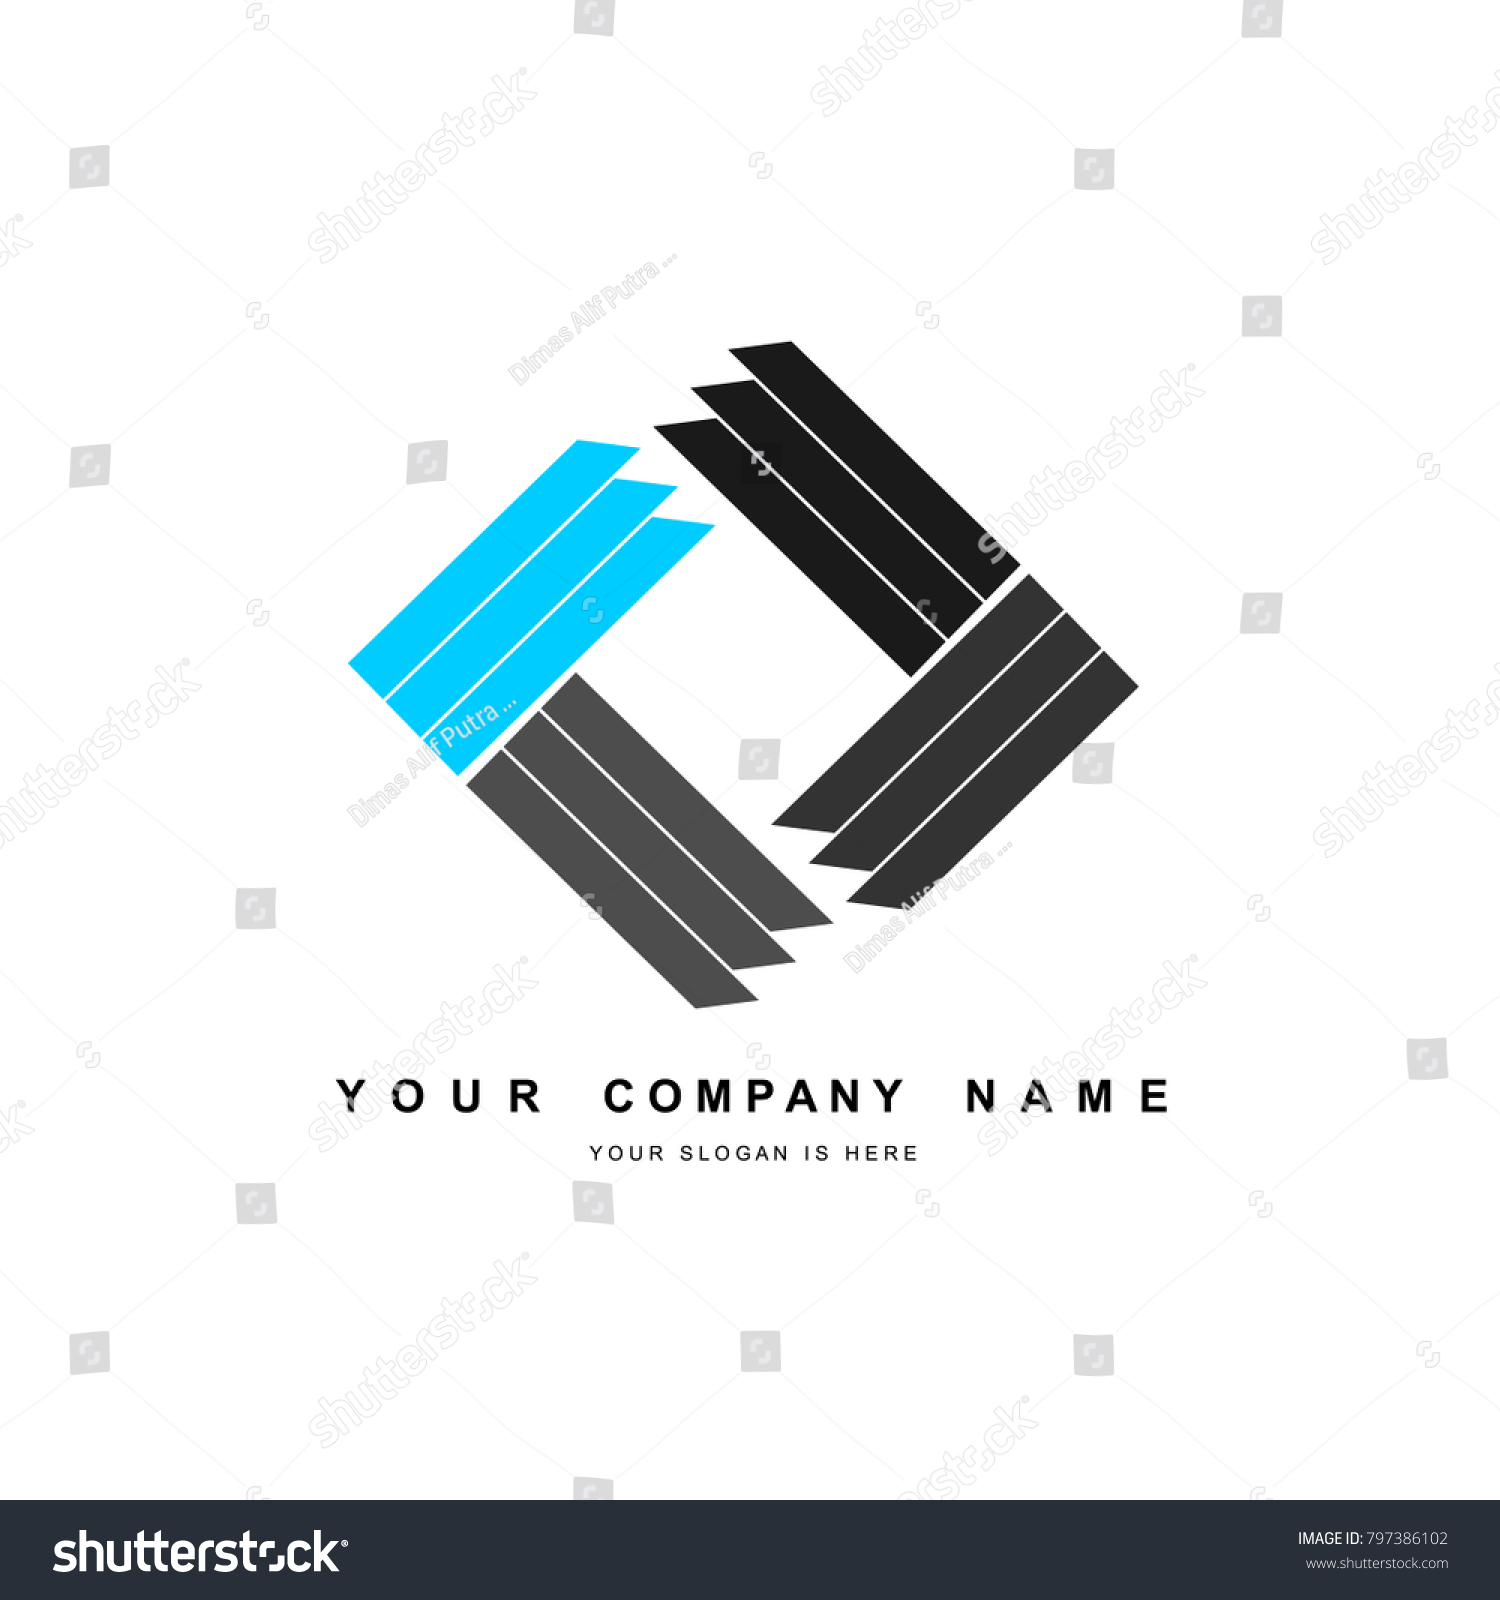 creative logo design of simple square objects and elegant concept for  company , industrial , education and creative project  exported as eps 10  format